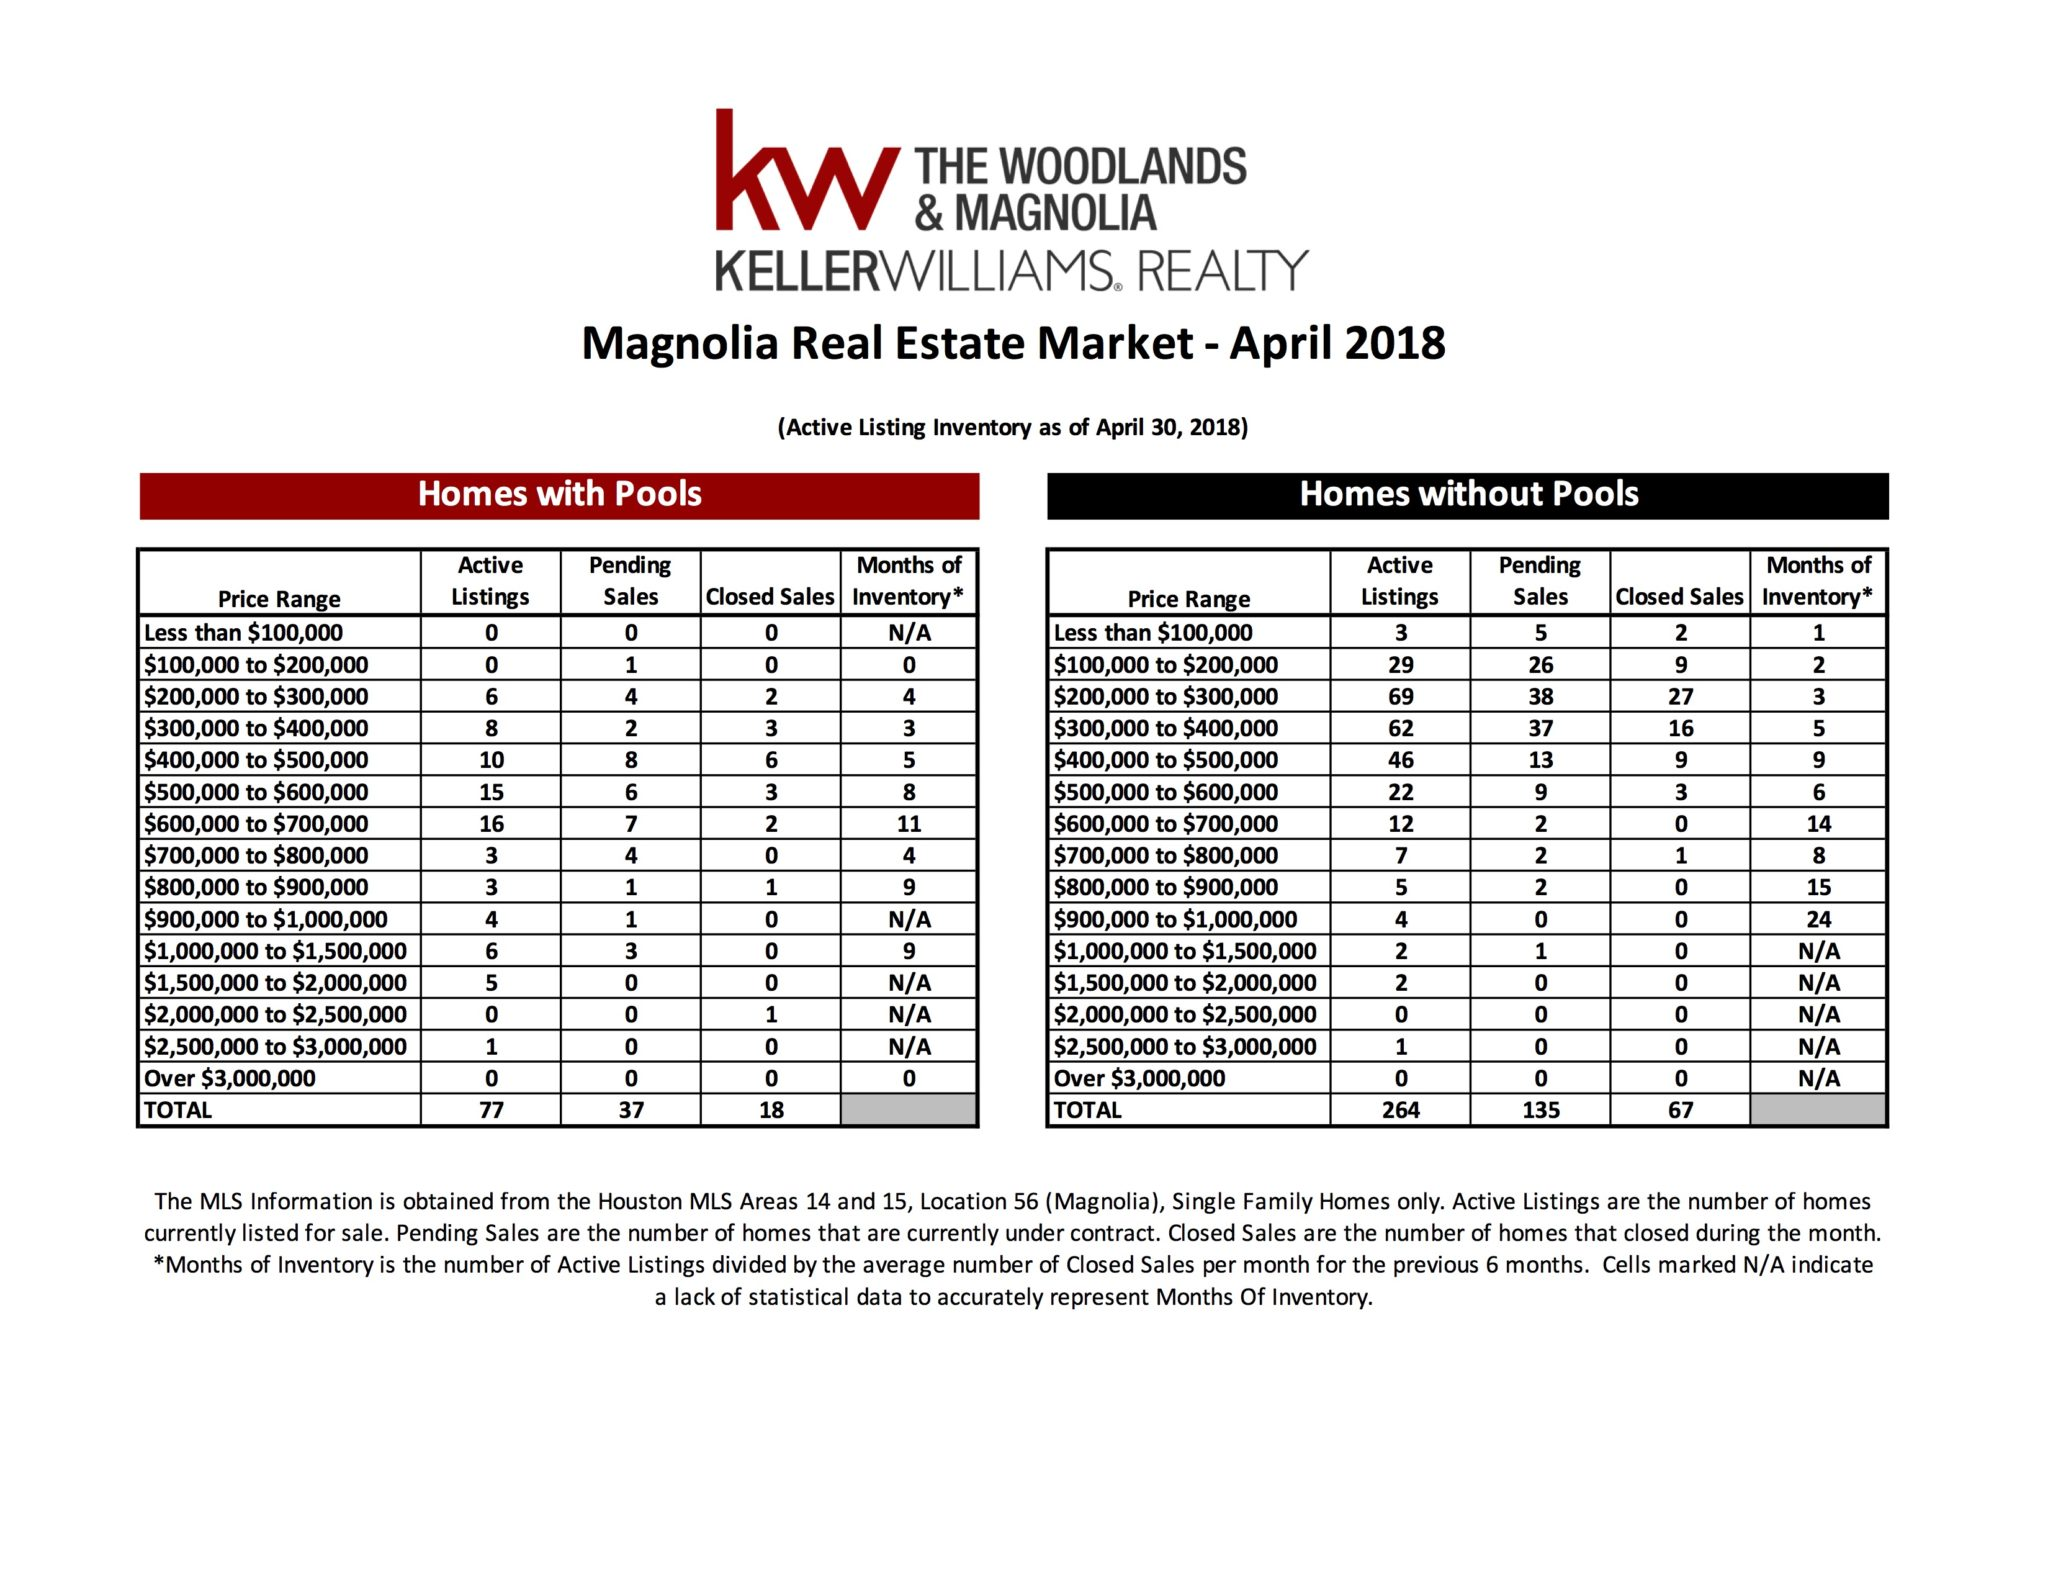 , April 2018 Marketwatch Report – Magnolia, KW Woodlands, KW Woodlands